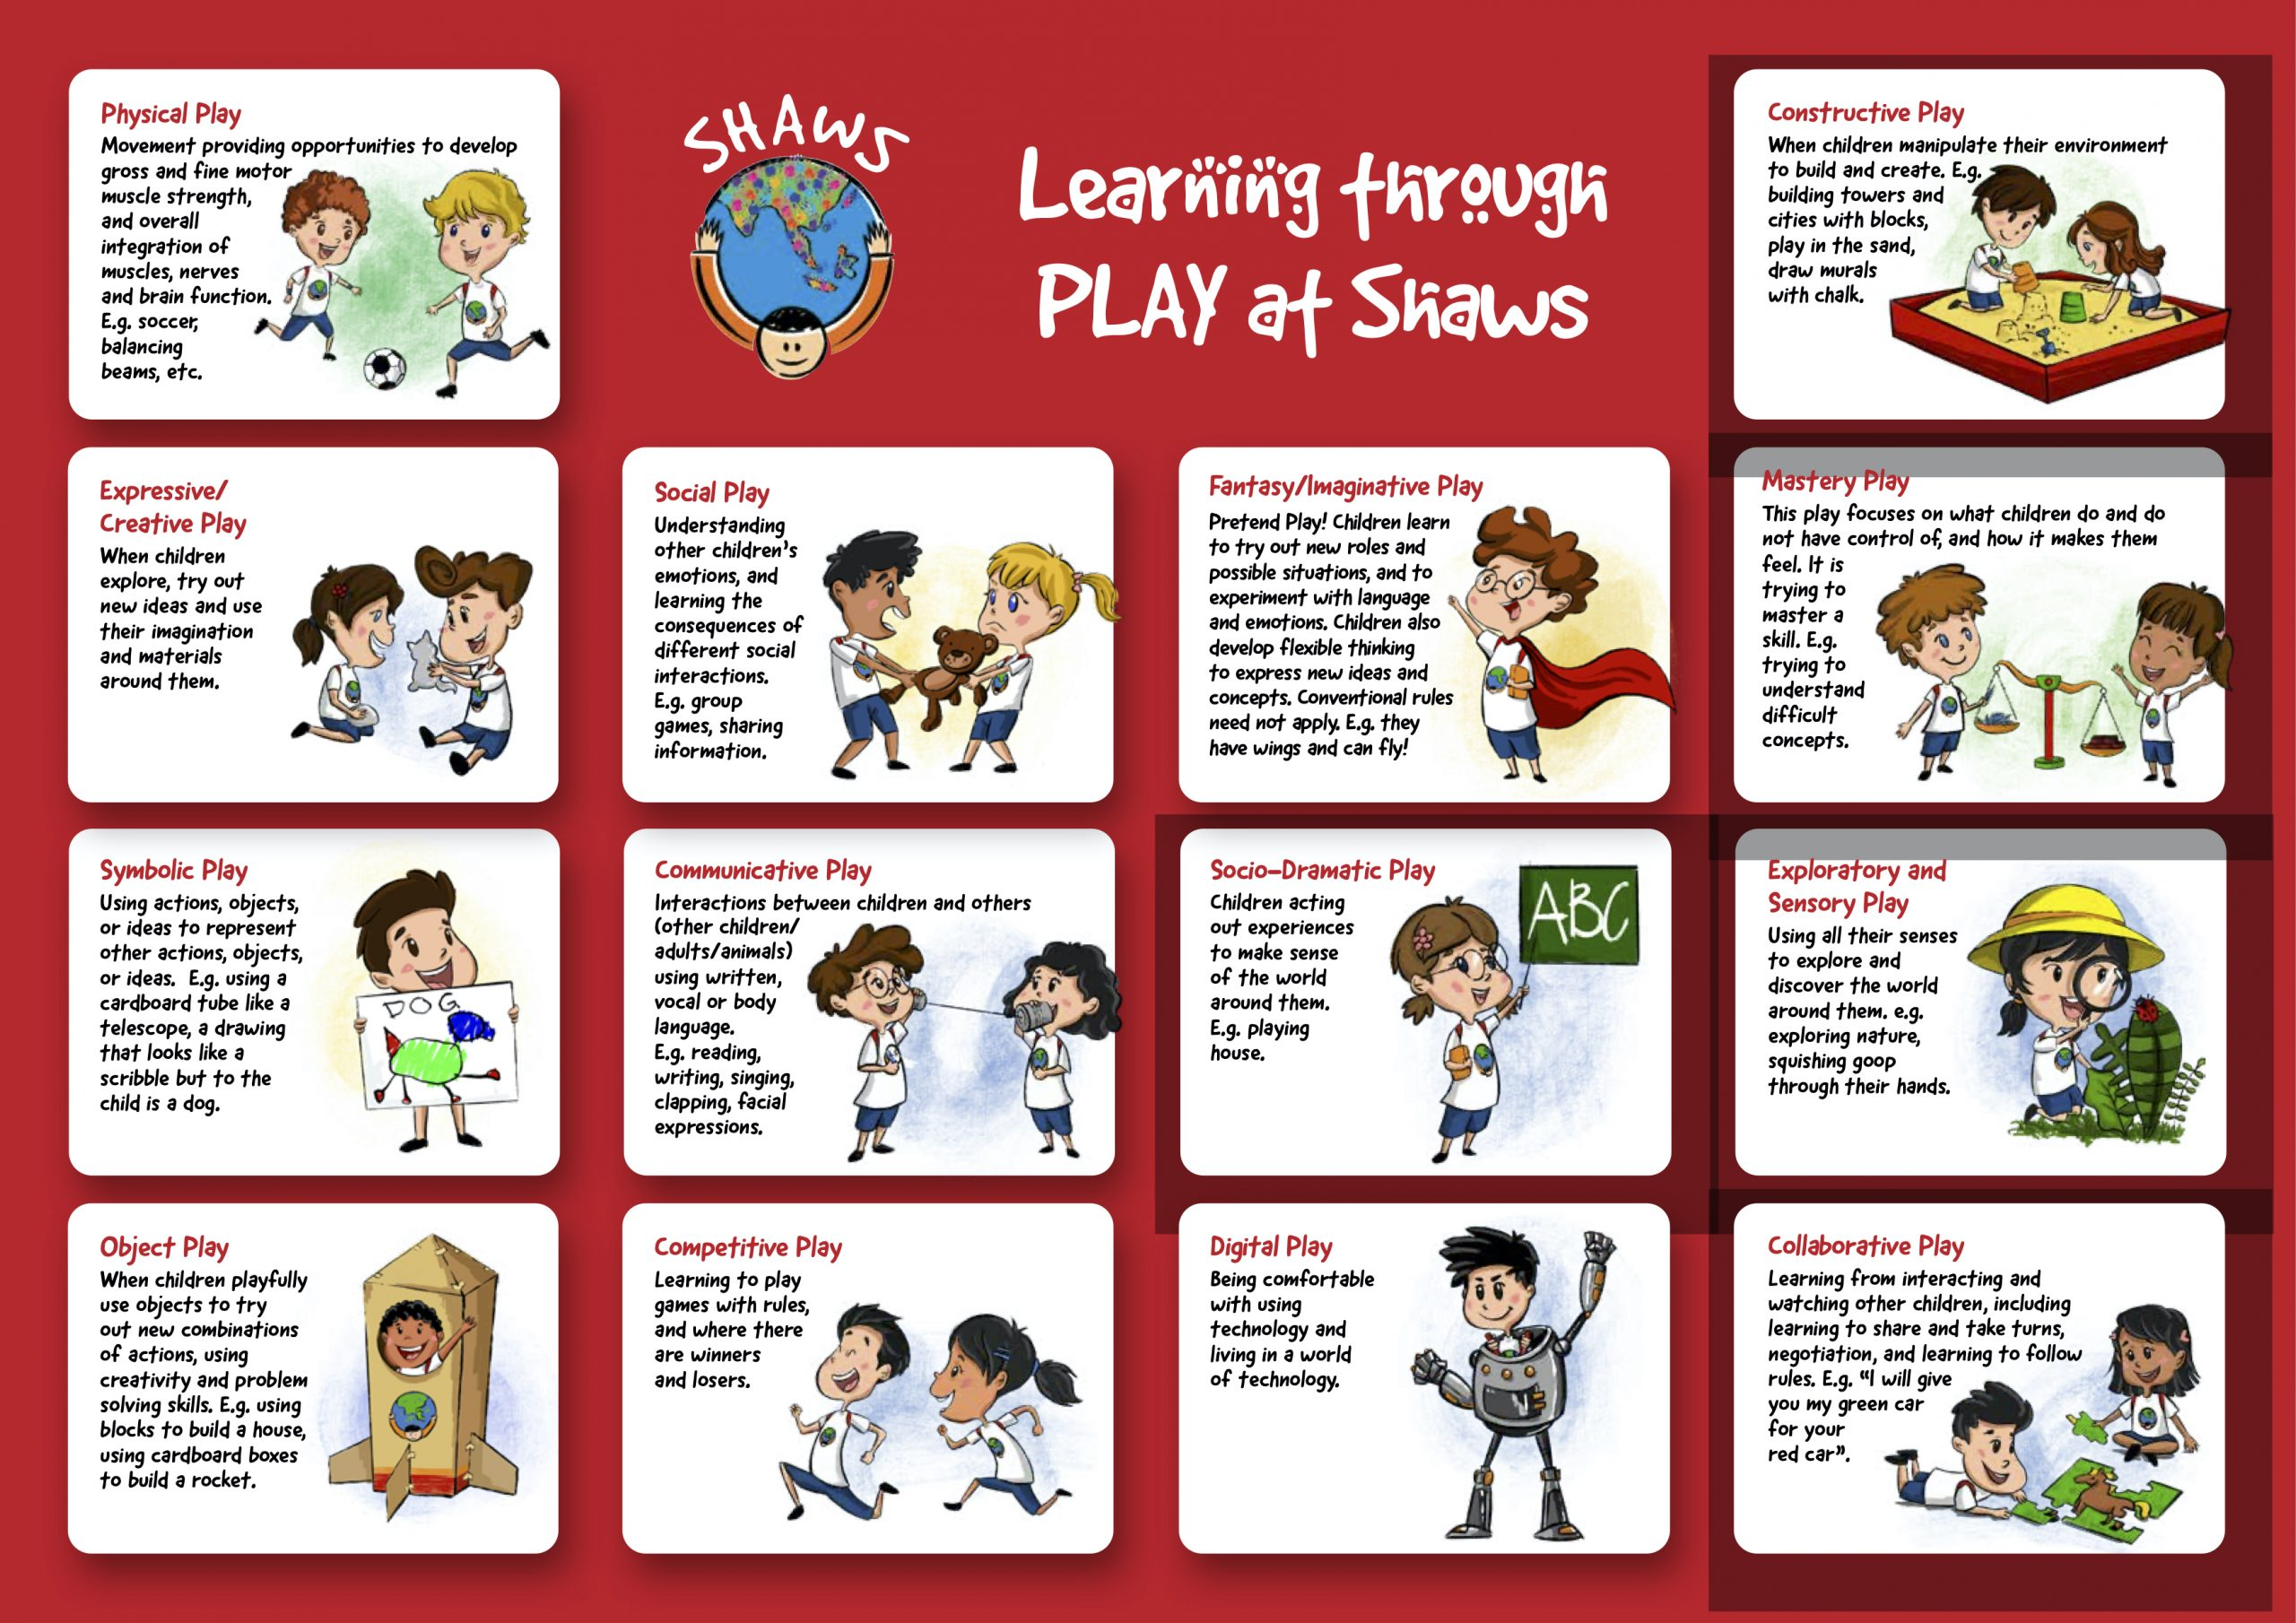 Learning through play at Shaws